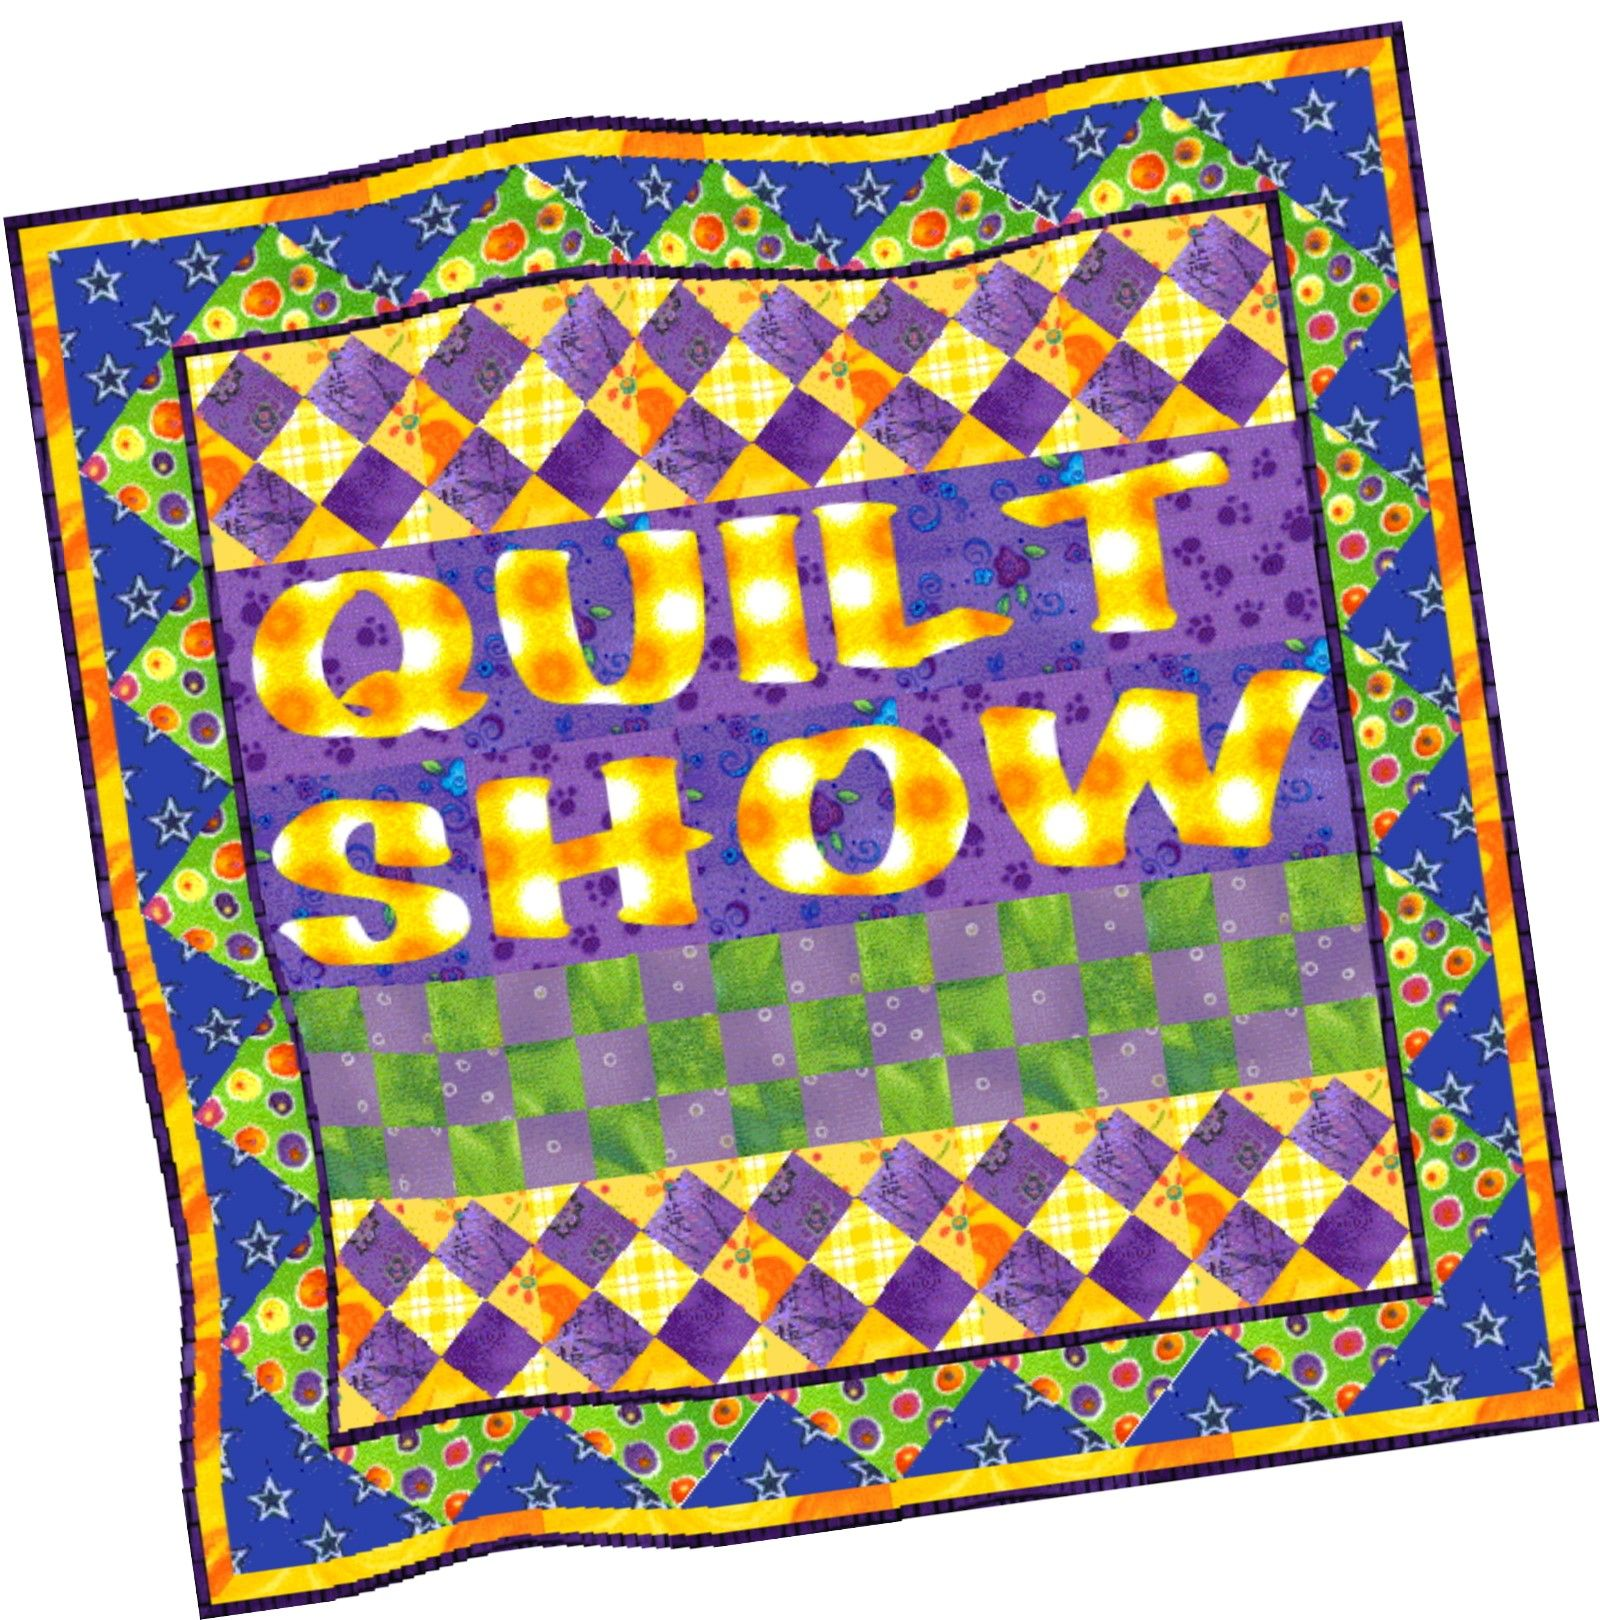 232 Quilting free clipart.